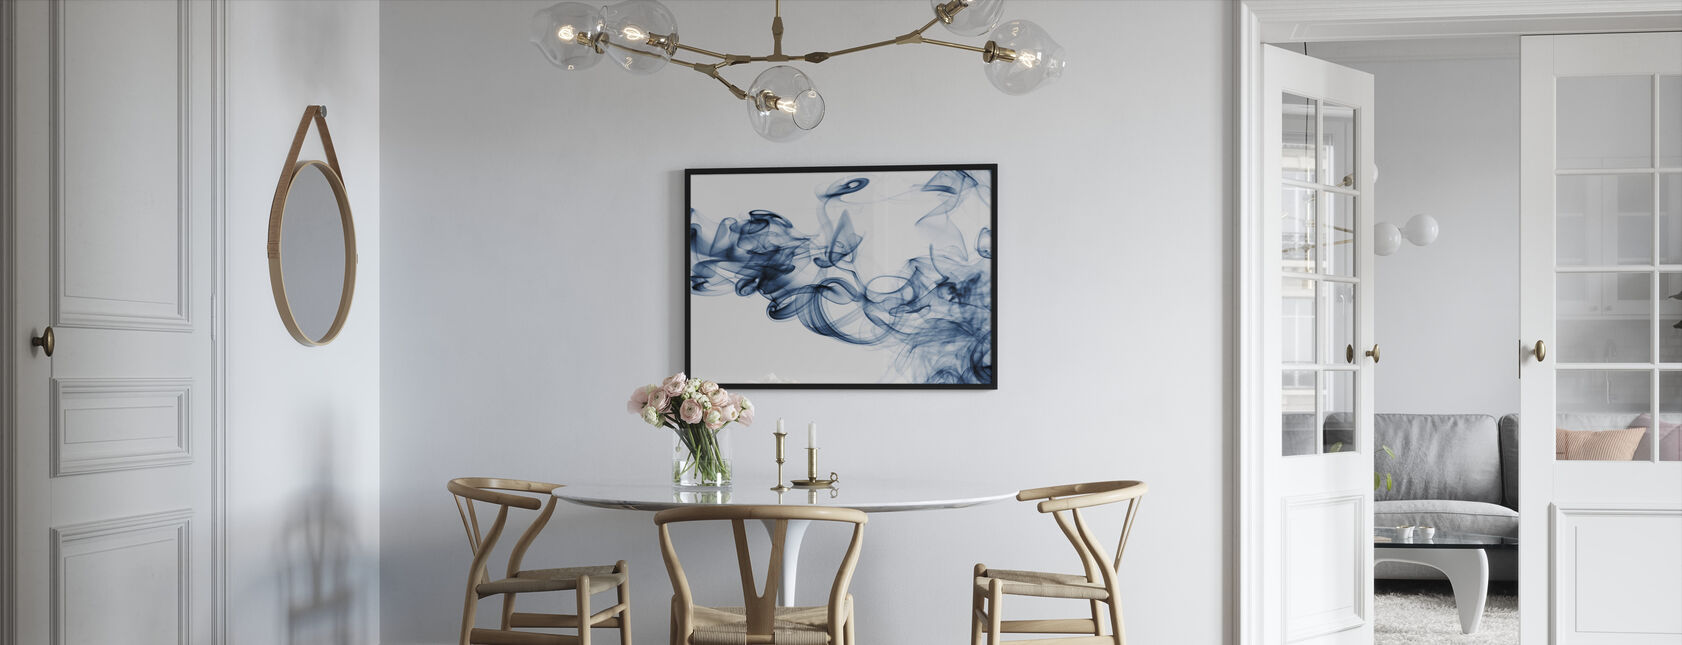 Streams of Smoke - Framed print - Kitchen